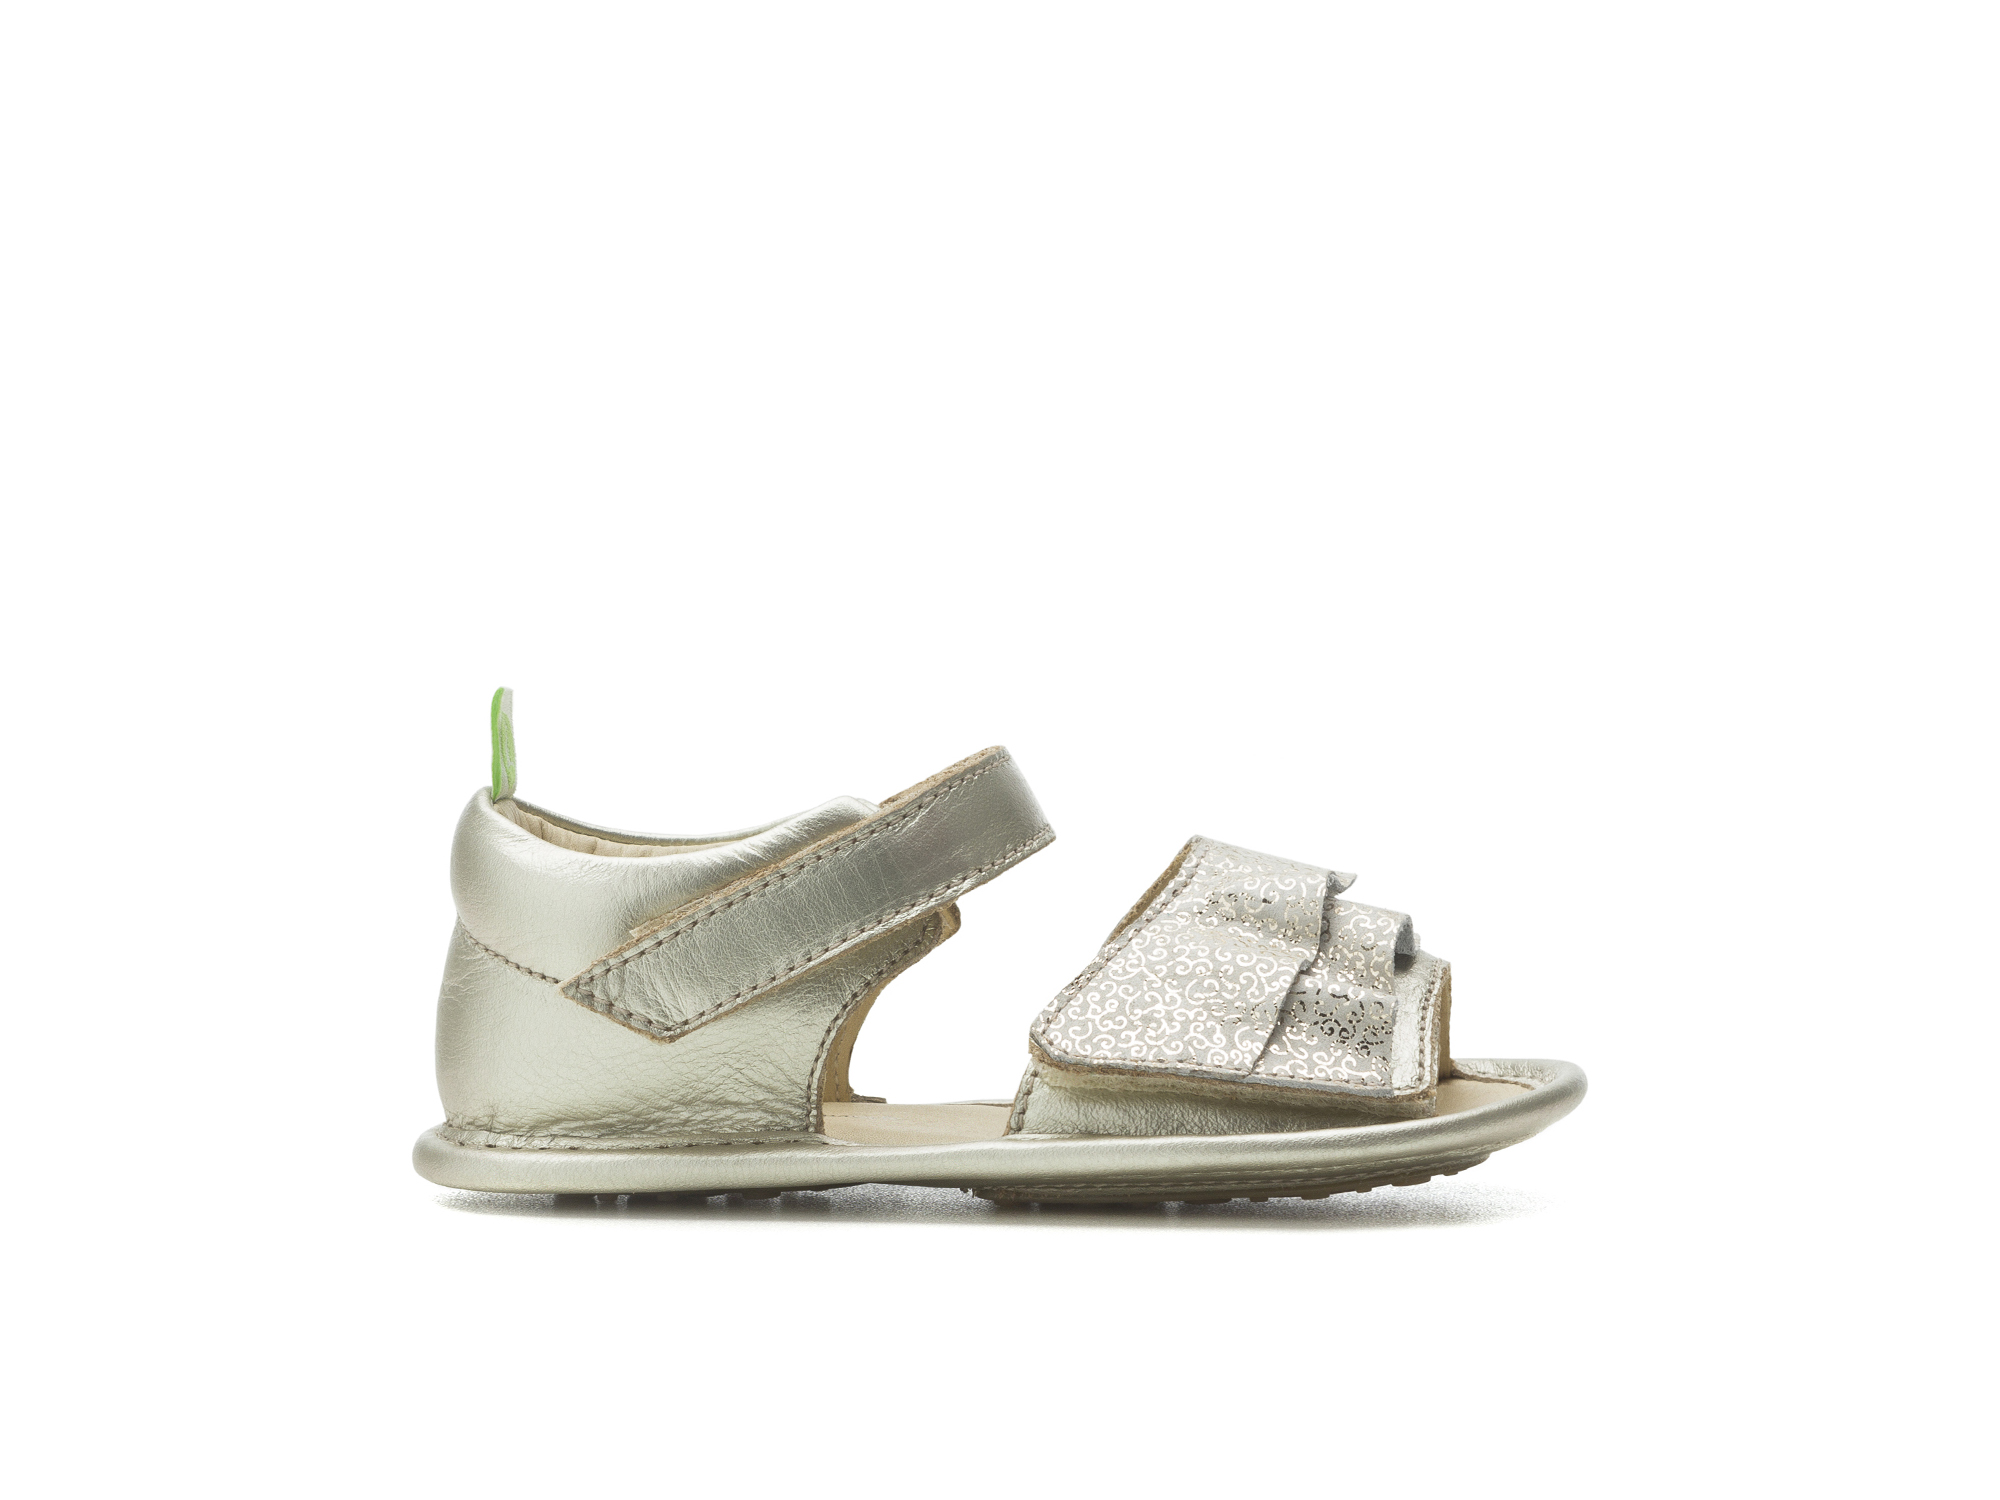 Sandal Windy Whitegold/ Golden Lace Baby for ages 0 to 2 years - 1